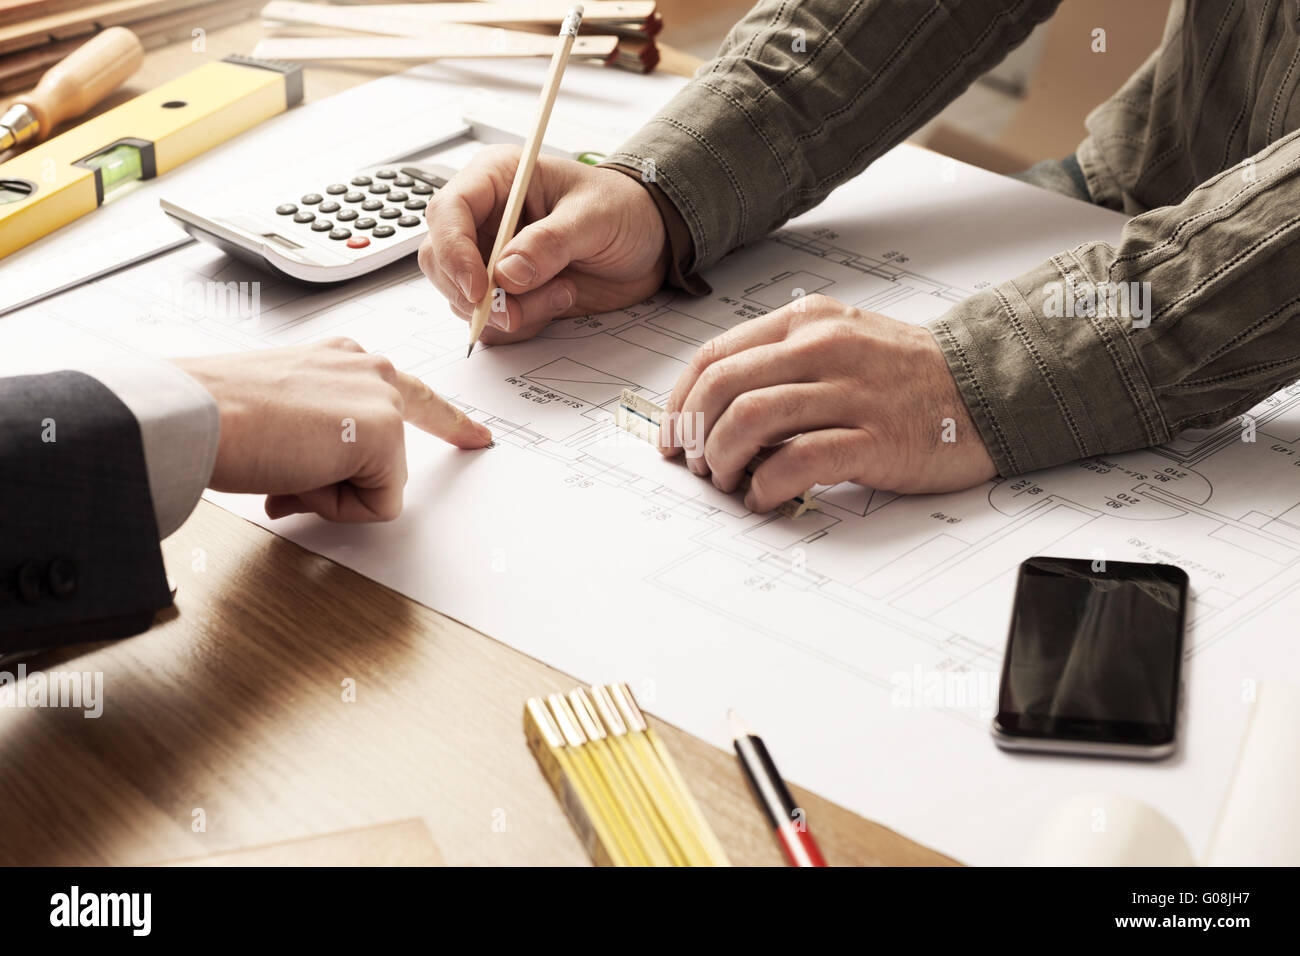 Businessman and construction engineer working together, the customer is pointing on the project on the desk - Stock Image